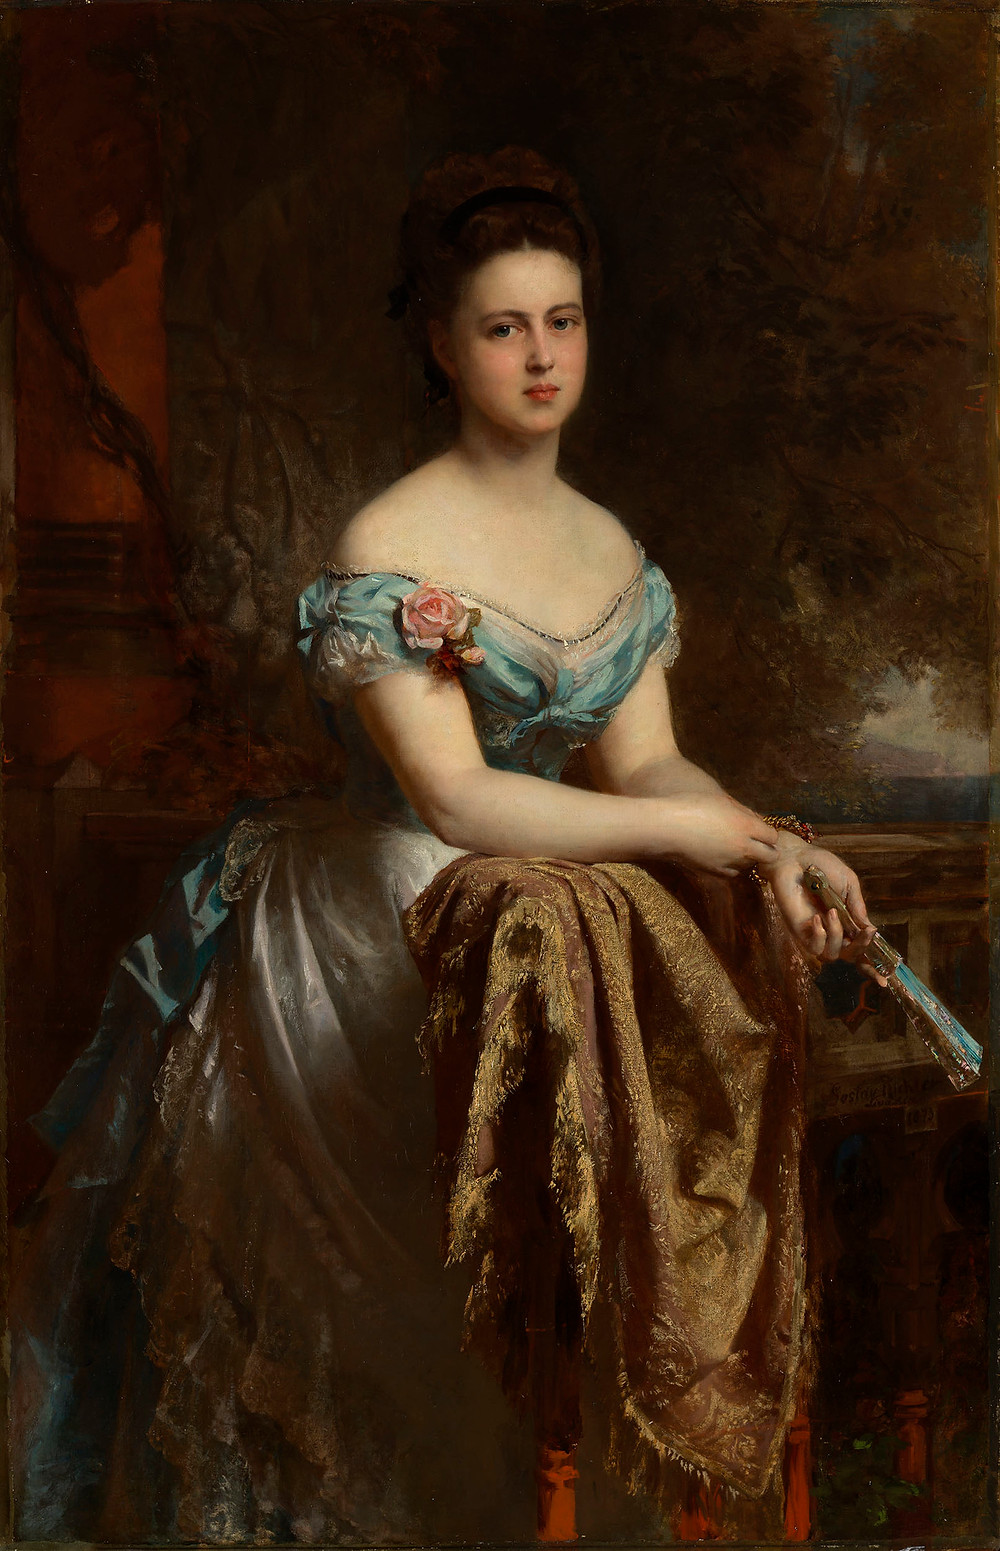 Marie, Duchess of Edinburgh, Grand Duchess of Russia, by GUSTAV RICHTER.   Royal Collection Trust/(c) Her Majesty Queen Elizabeth II 2018